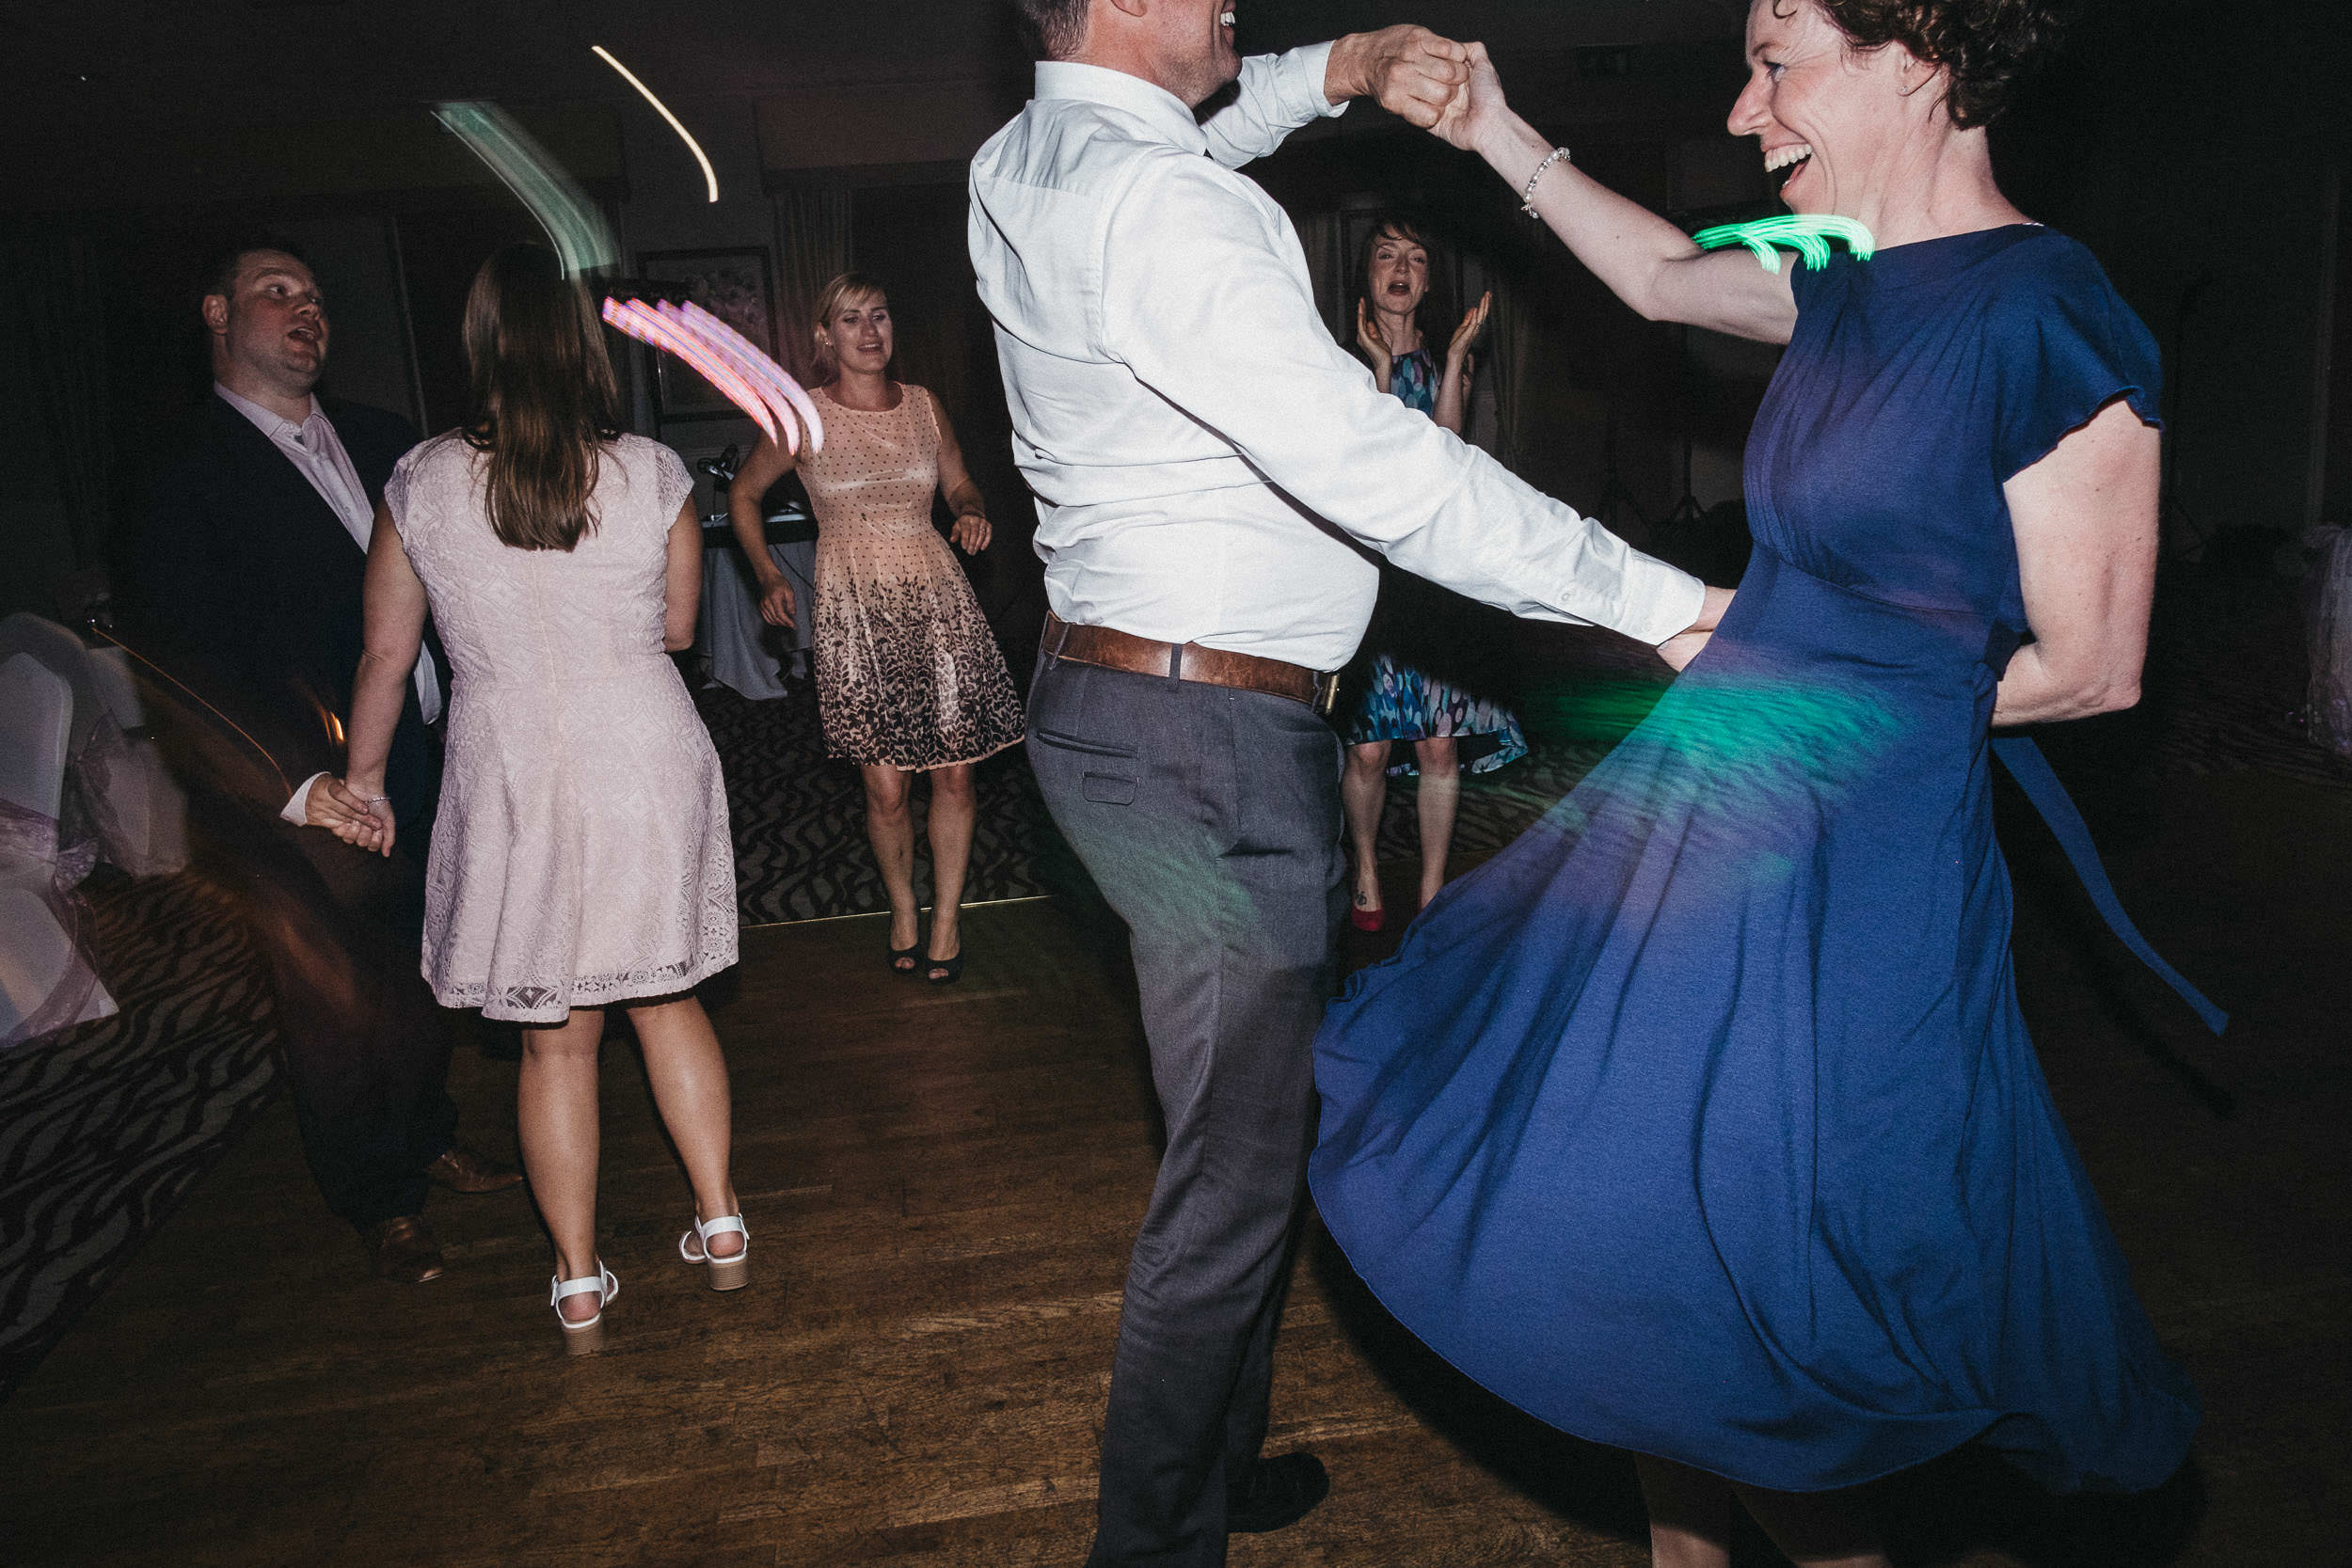 Guests dancing and smiling on dance floor